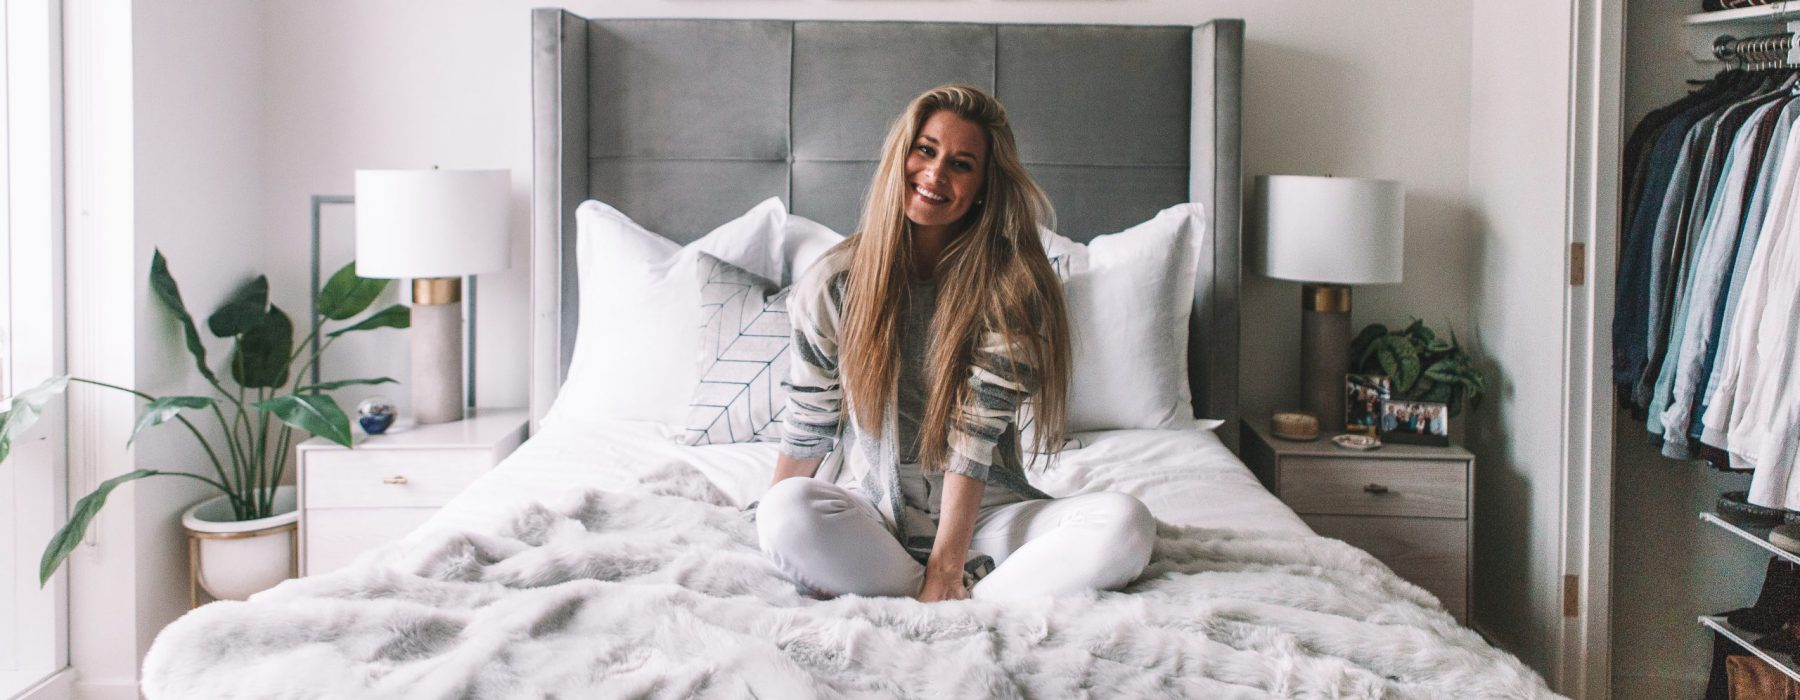 Olivia Rink Shares Her Classic Glam NYC Bedroom